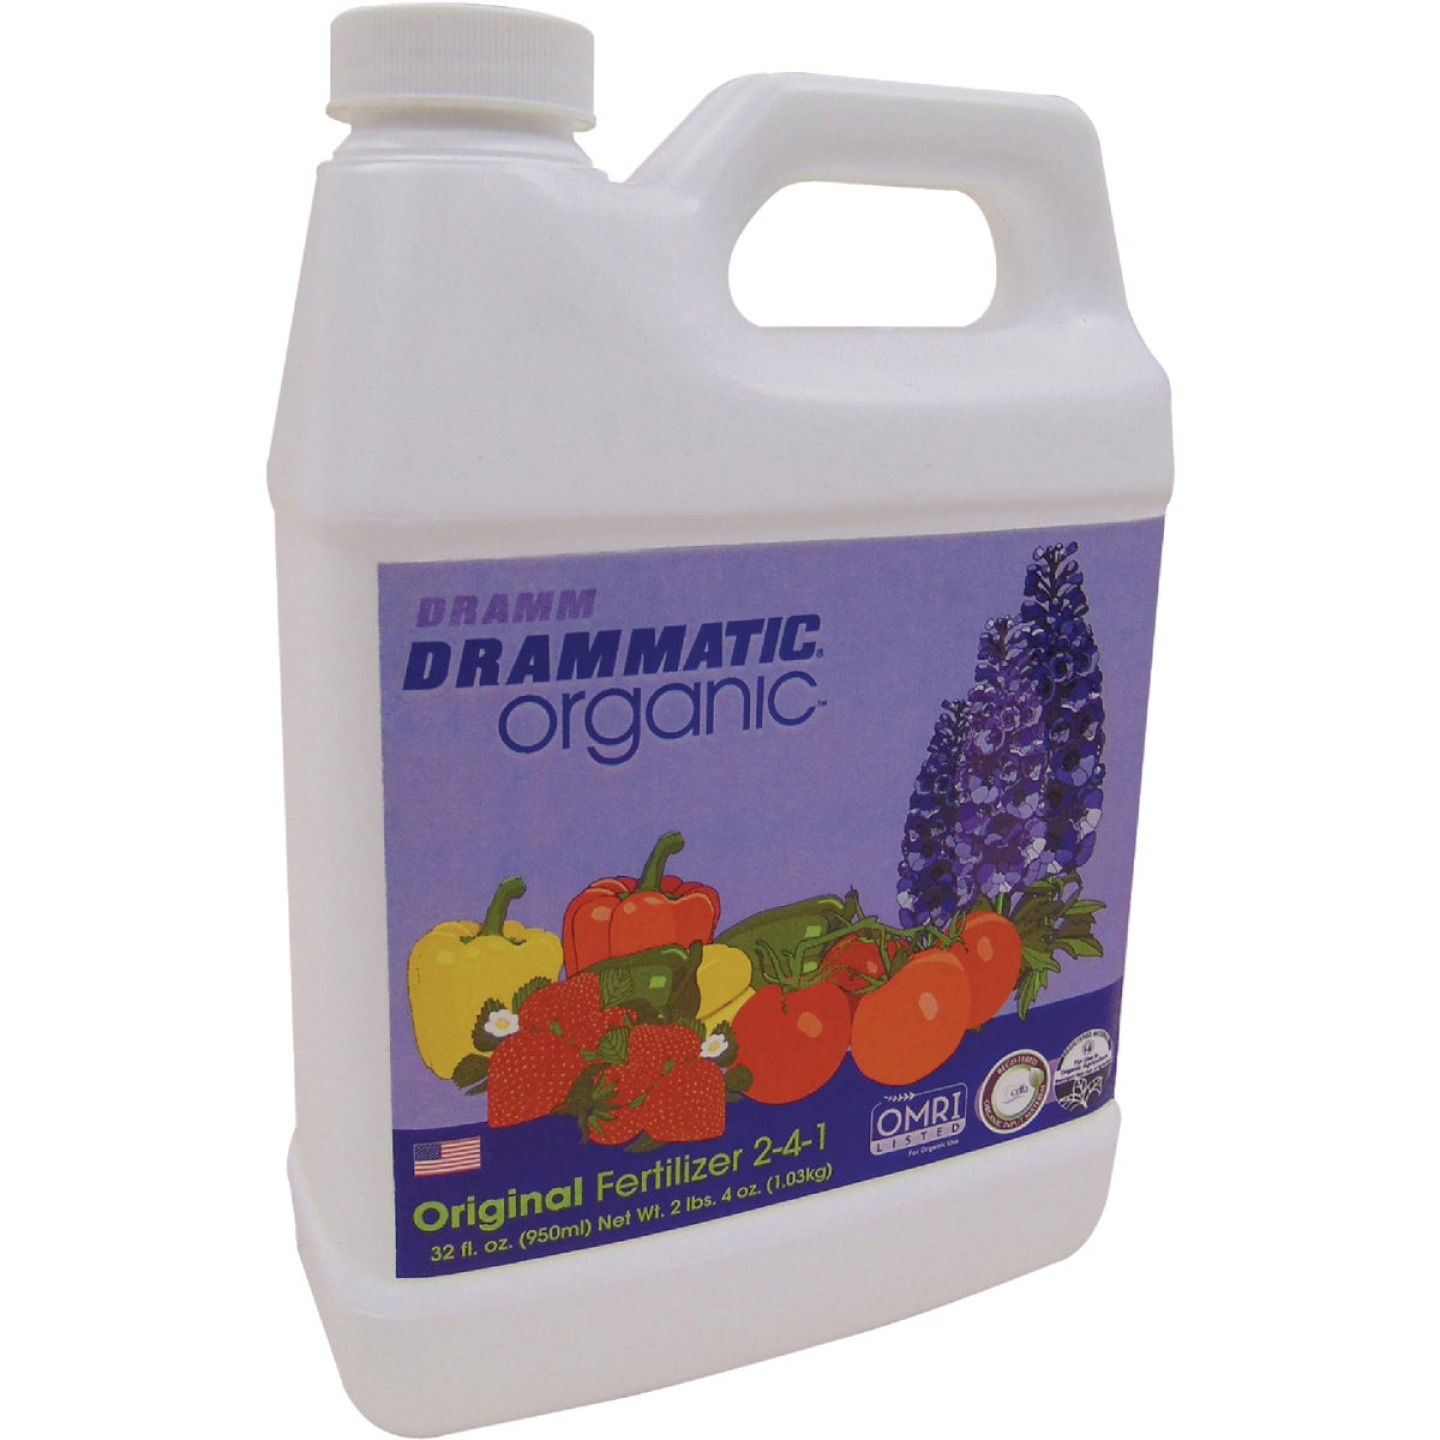 Drammatic 1 Qt. Organic Concentrate Liquid Plant Food Image 1